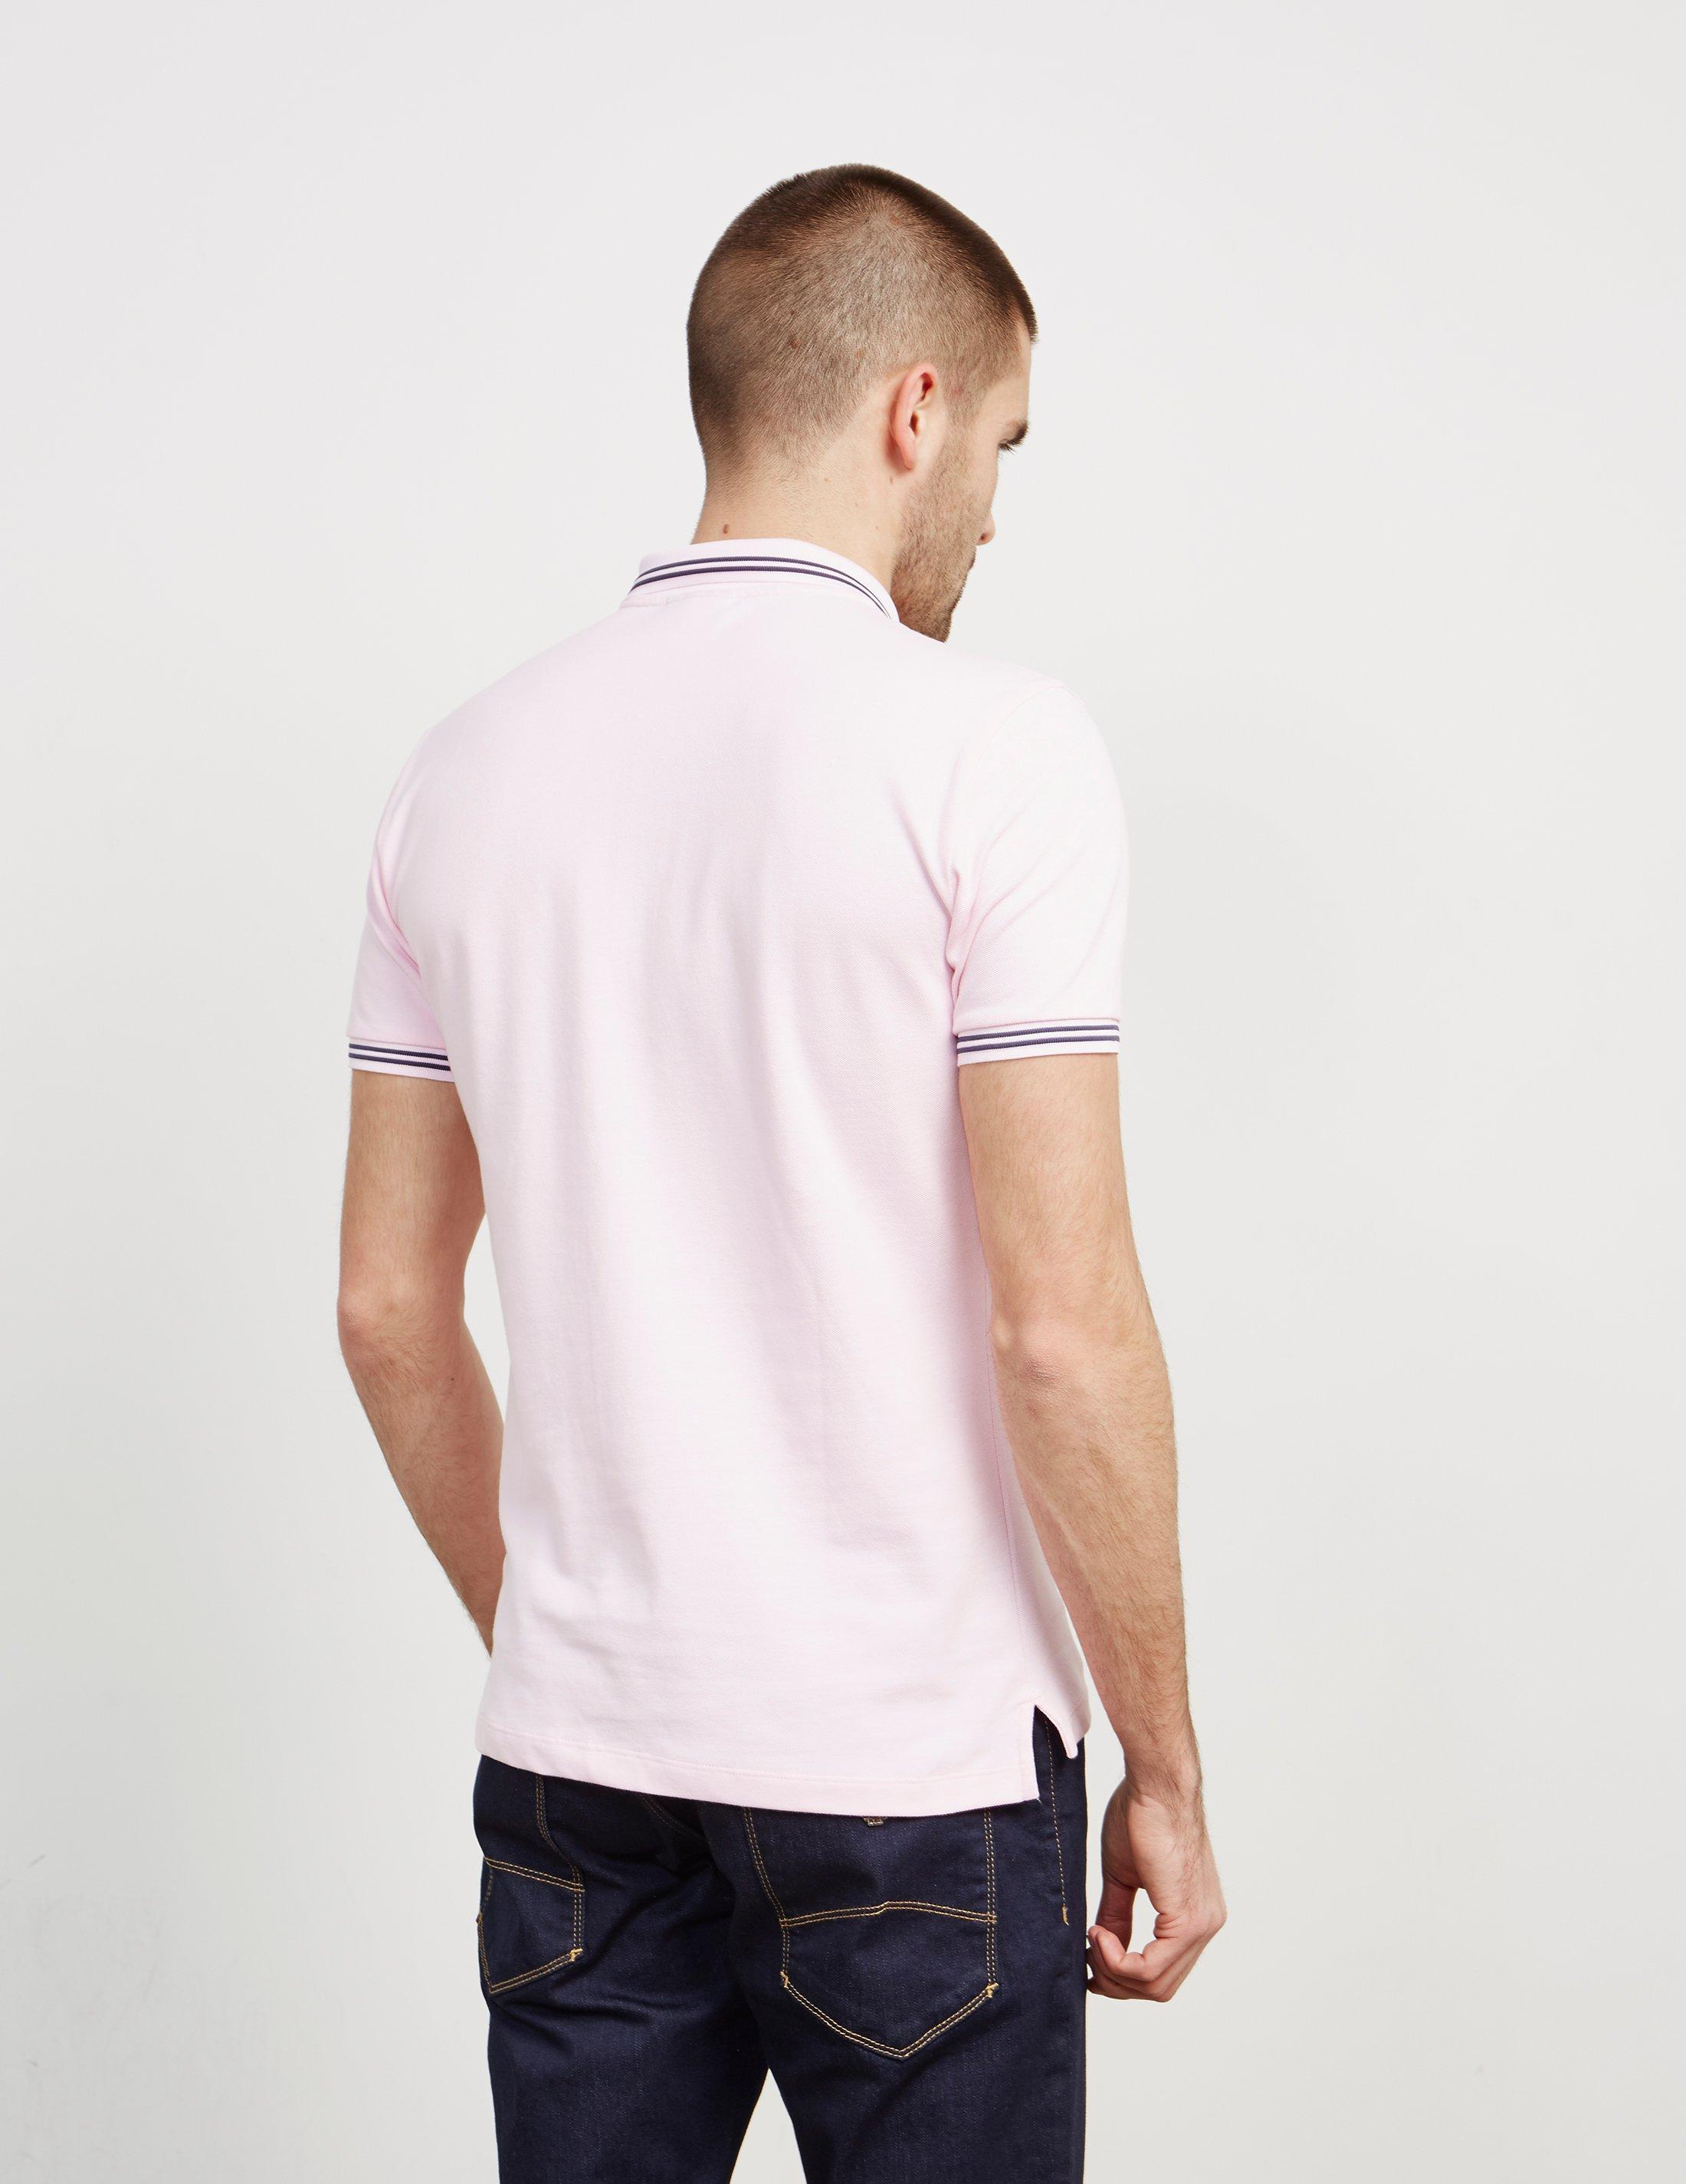 tipped polo shirt pink cargo shorts